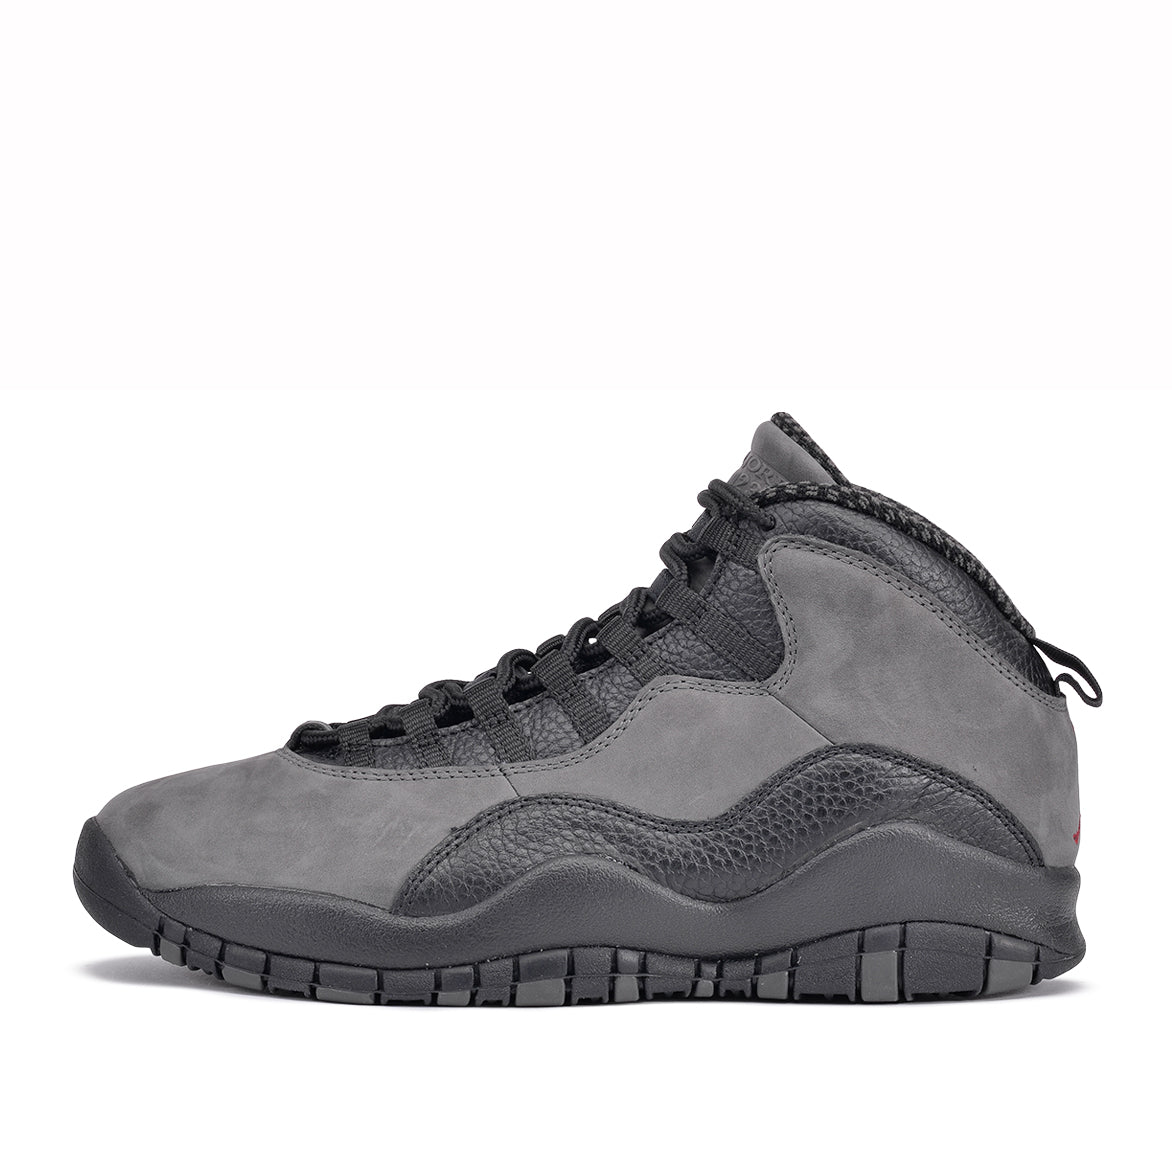 "AIR JORDAN 10 RETRO ""DARK SHADOW"""